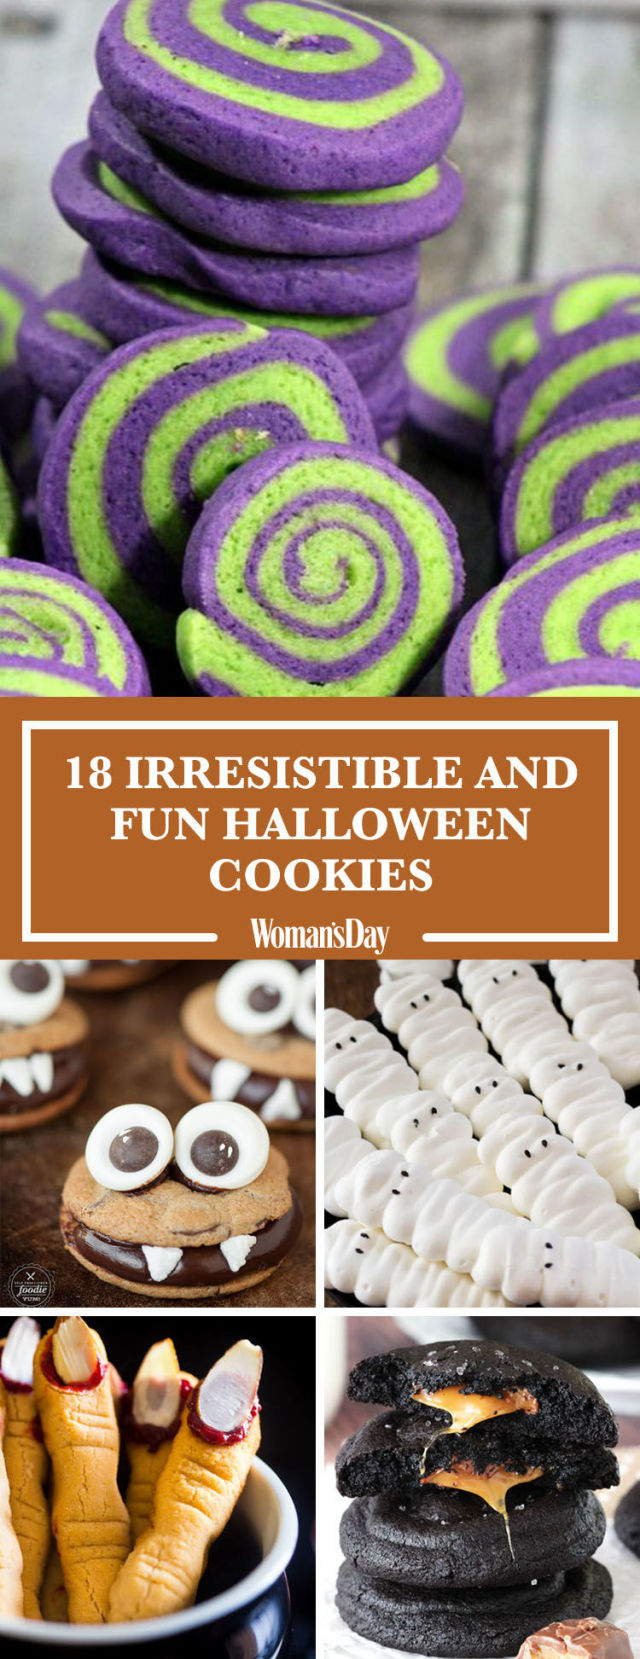 23 easy halloween cookie recipes cute ideas for halloween cookies - Easy Halloween Cookie Ideas